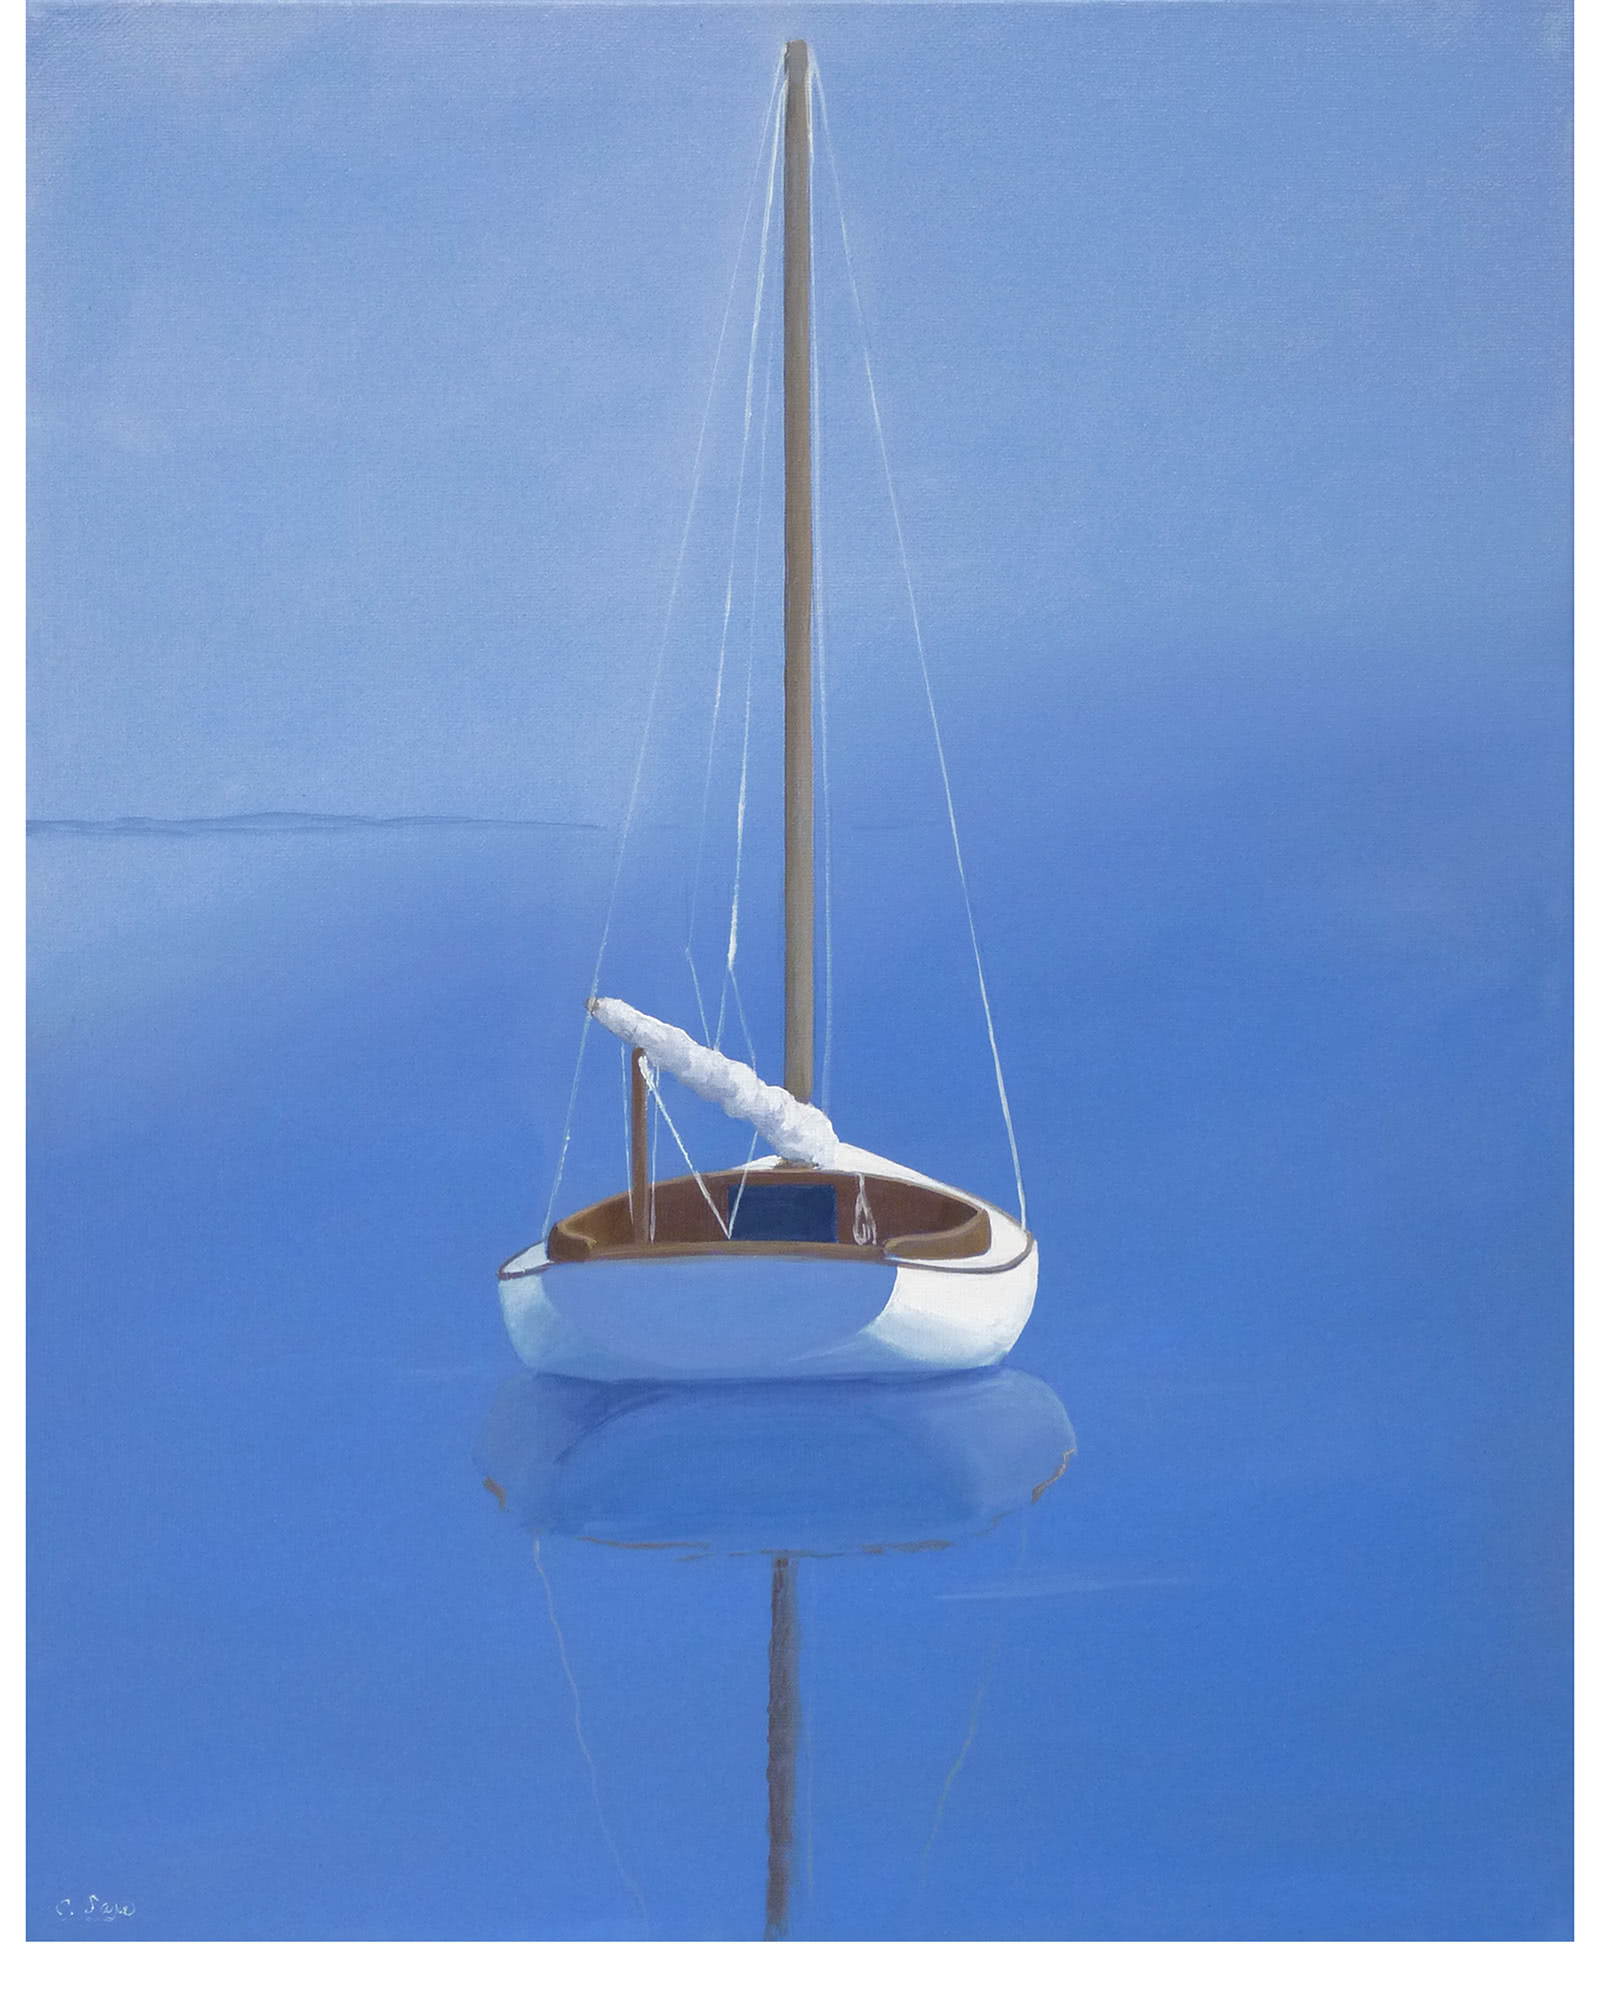 Sailboat Stern Reflections by Carol Saxe